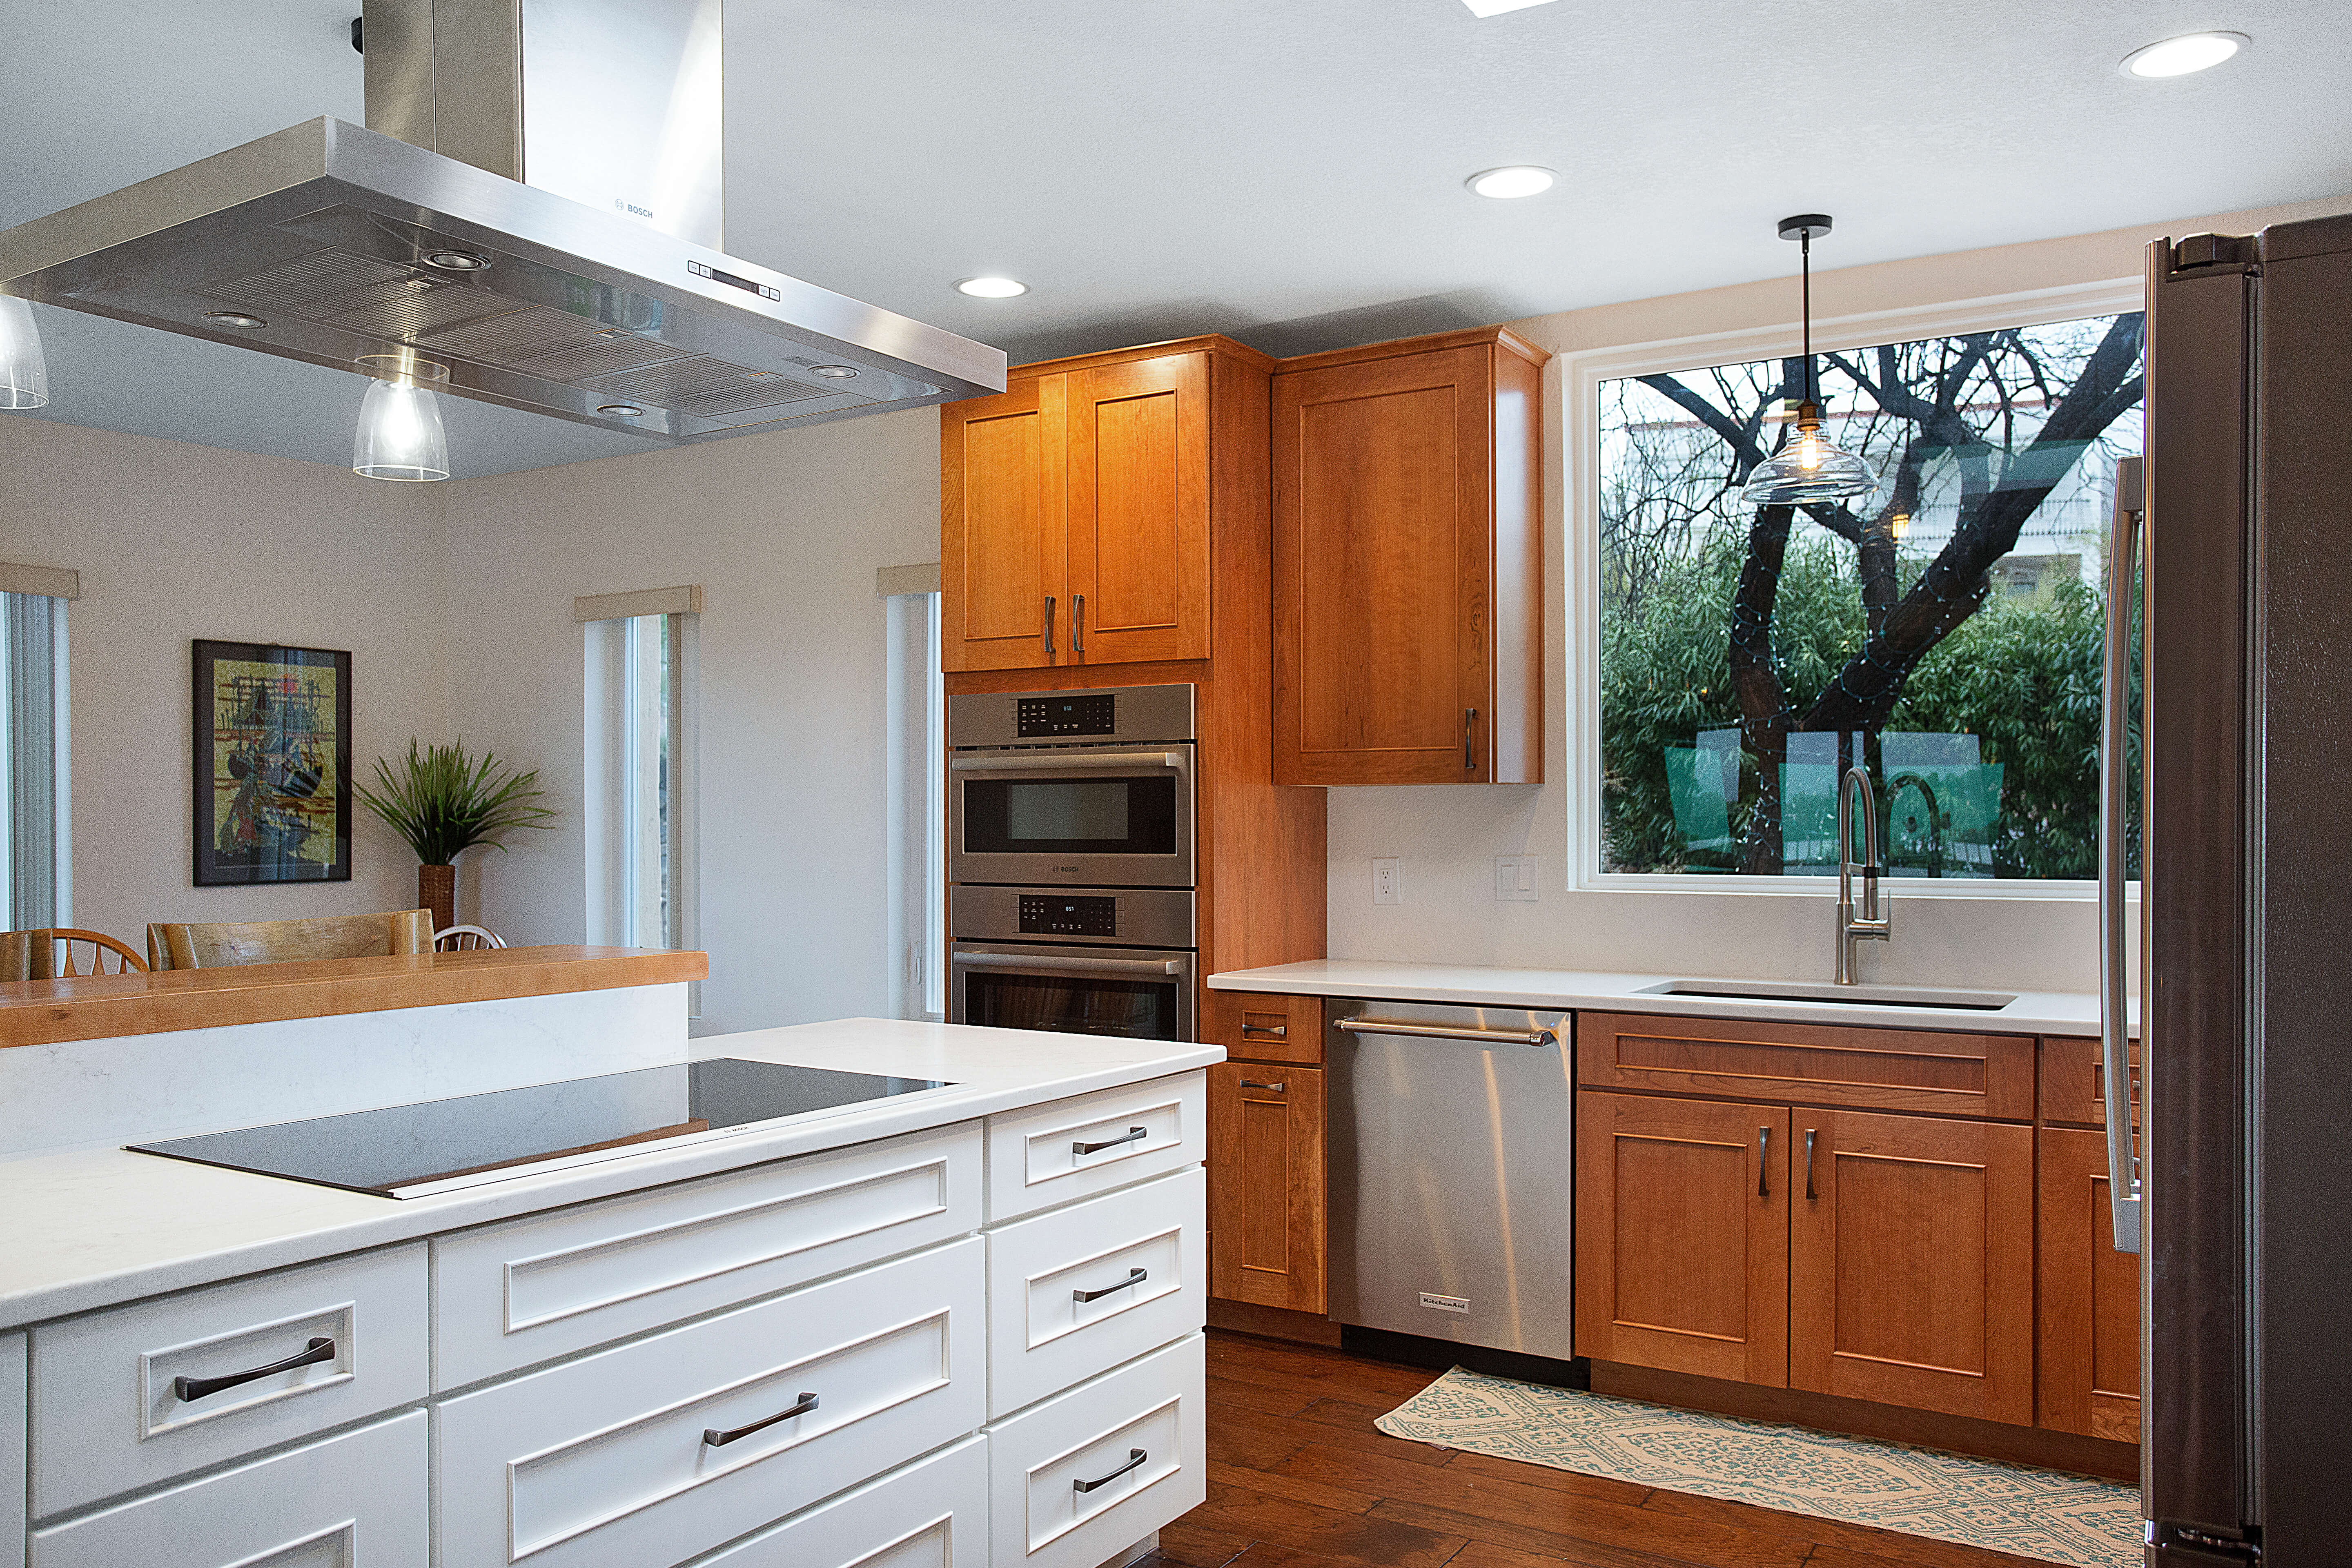 Getting To Know Karman Cabinetry Southwest Kitchen